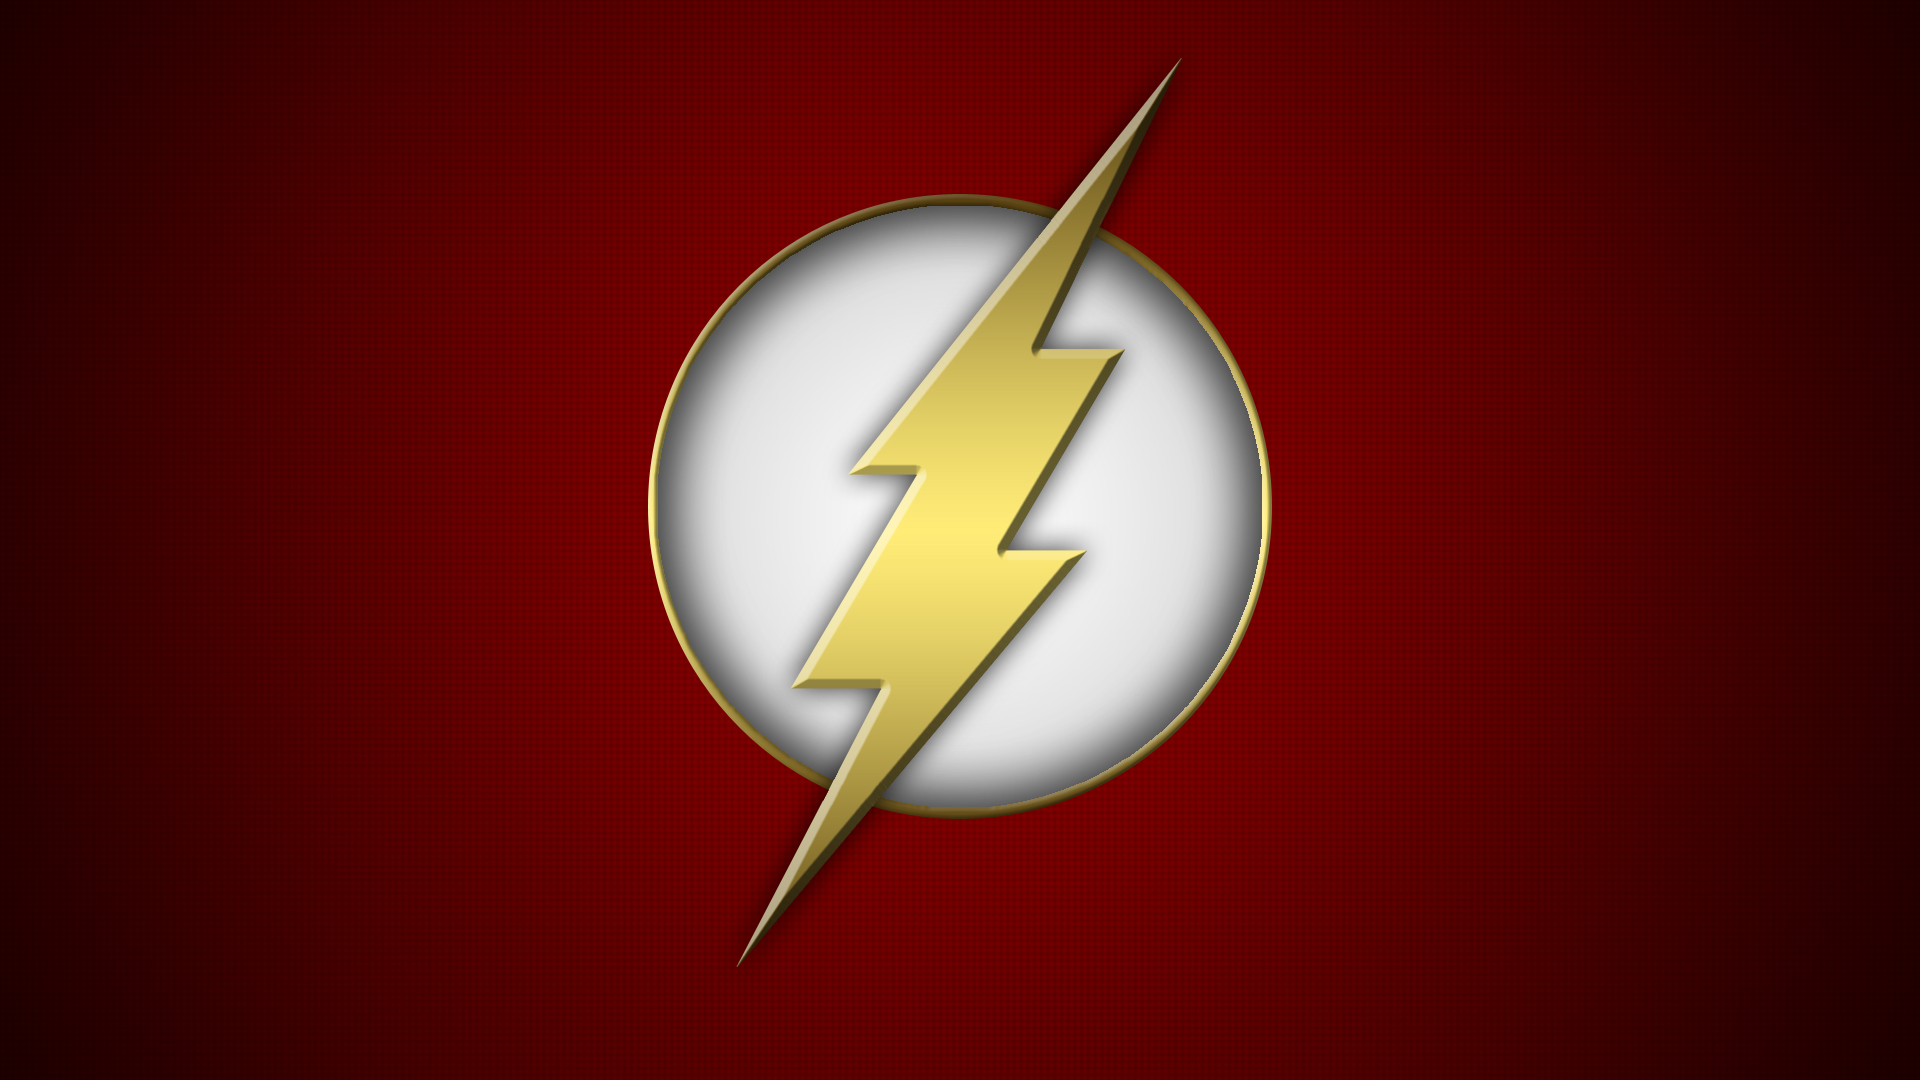 The Flash Symbol Wallpapers Group (74+)